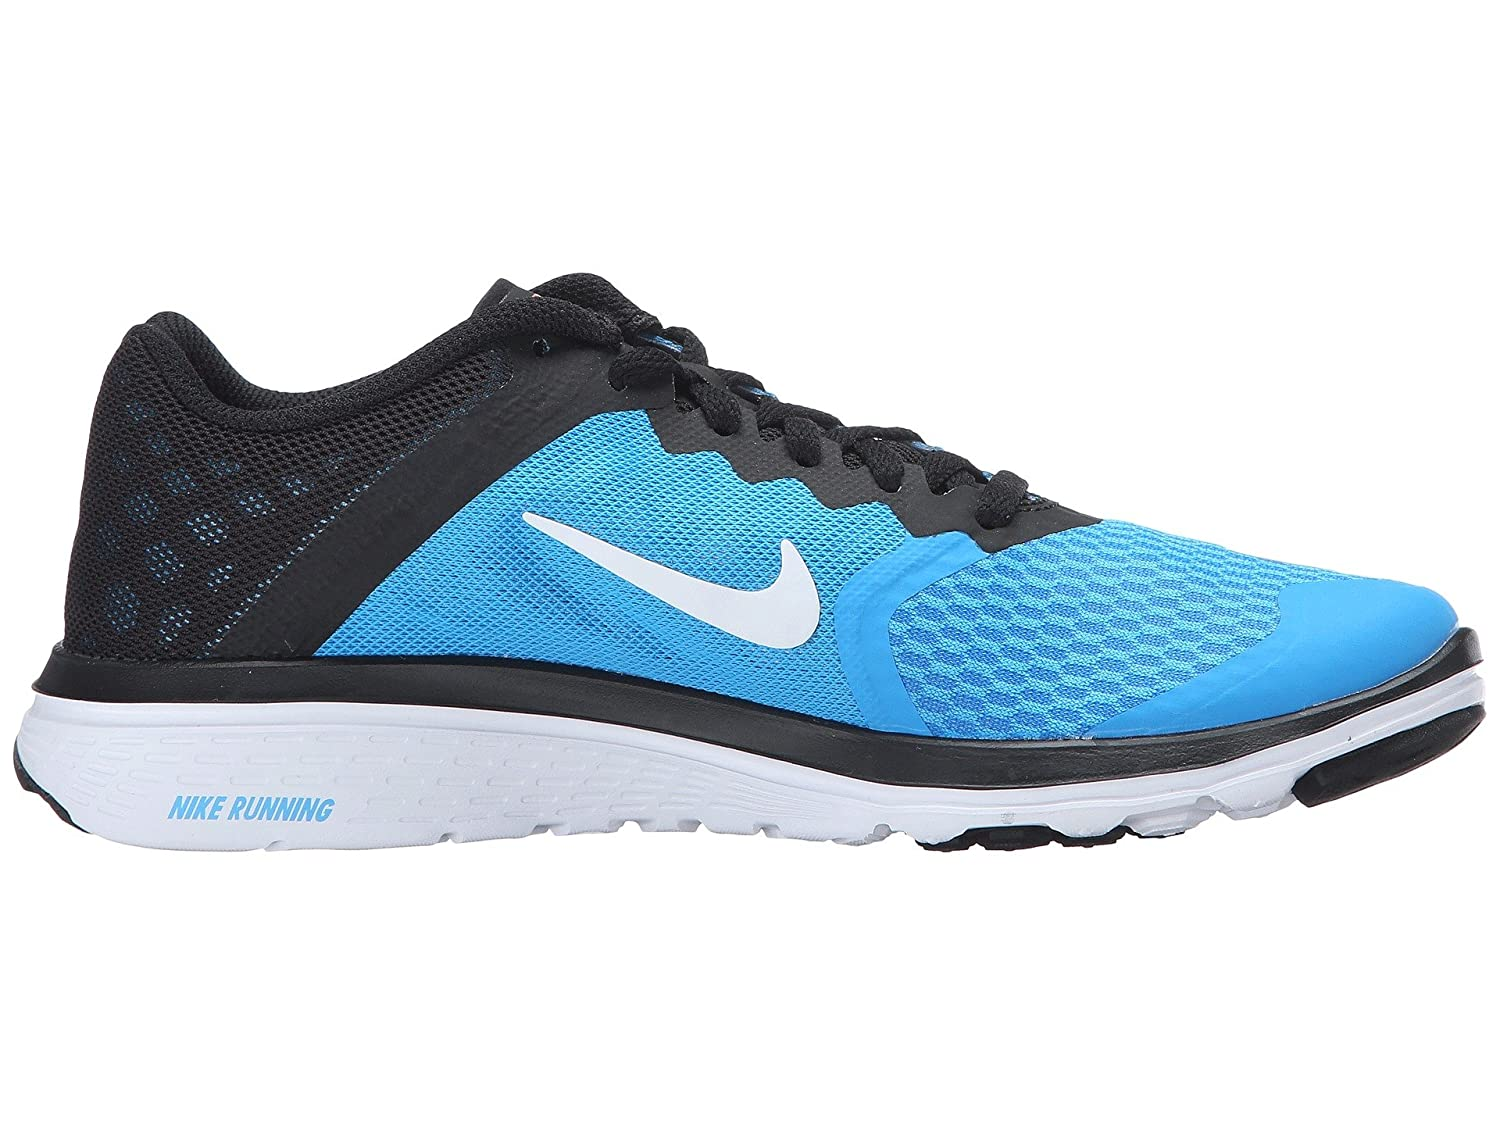 timeless design 4b5d6 7b9f6 Amazon.com  Nike FS Lite Run 3 Blue GlowWhite  Running